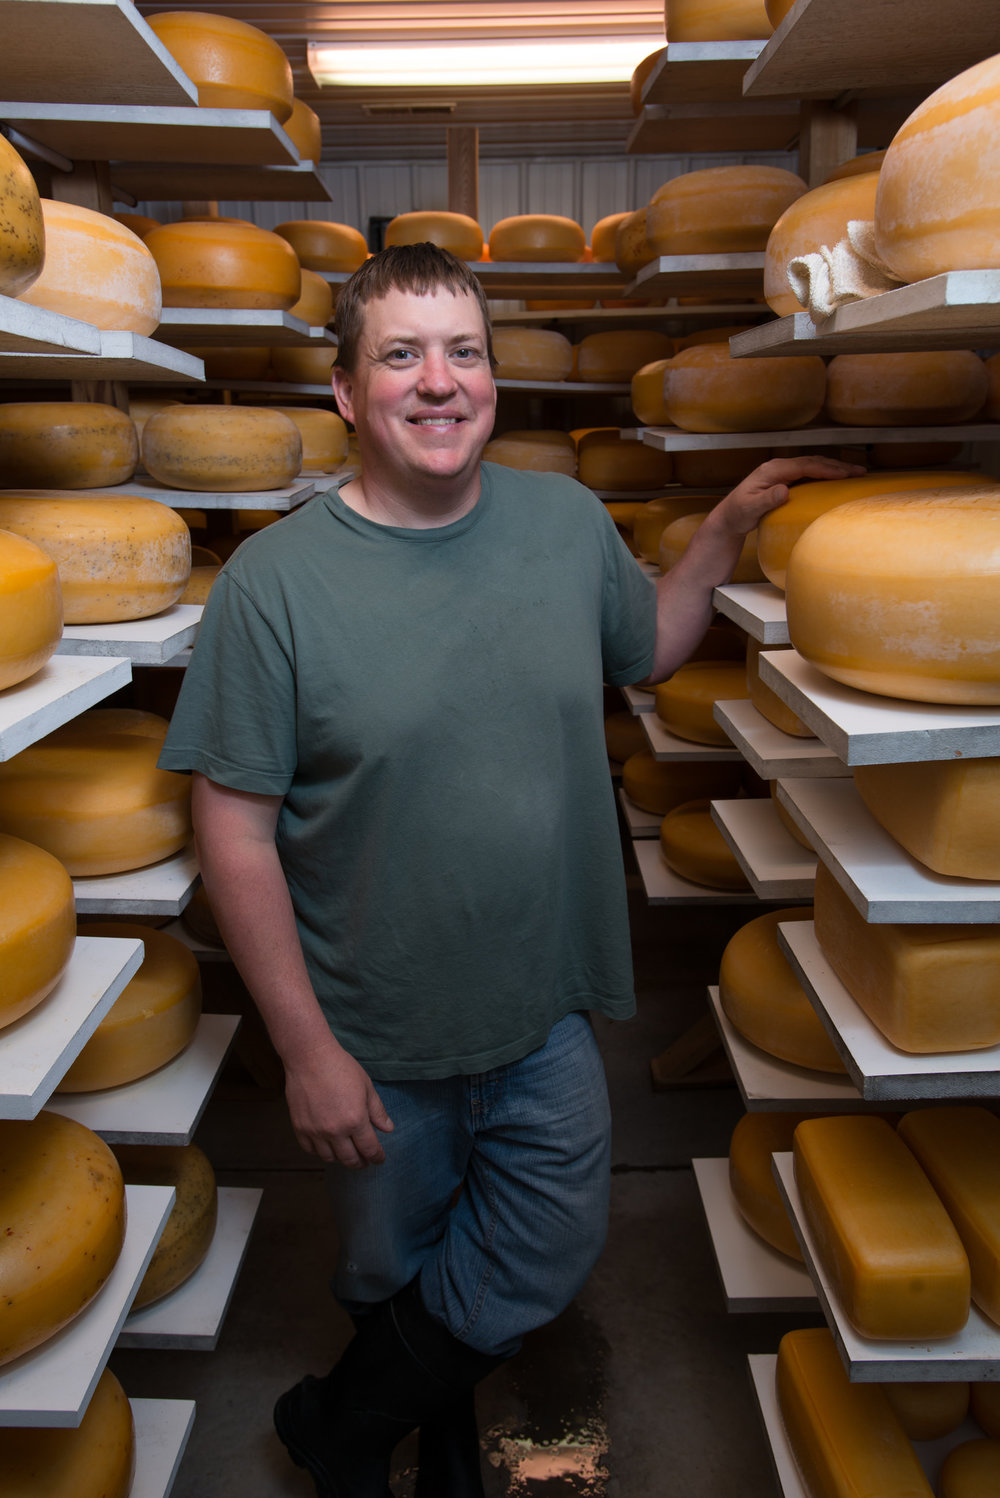 Frisian Farms Cheese House is famous for their Gouda cheese. Photo credit: Joseph L. Murphy, Iowa Soybean Association